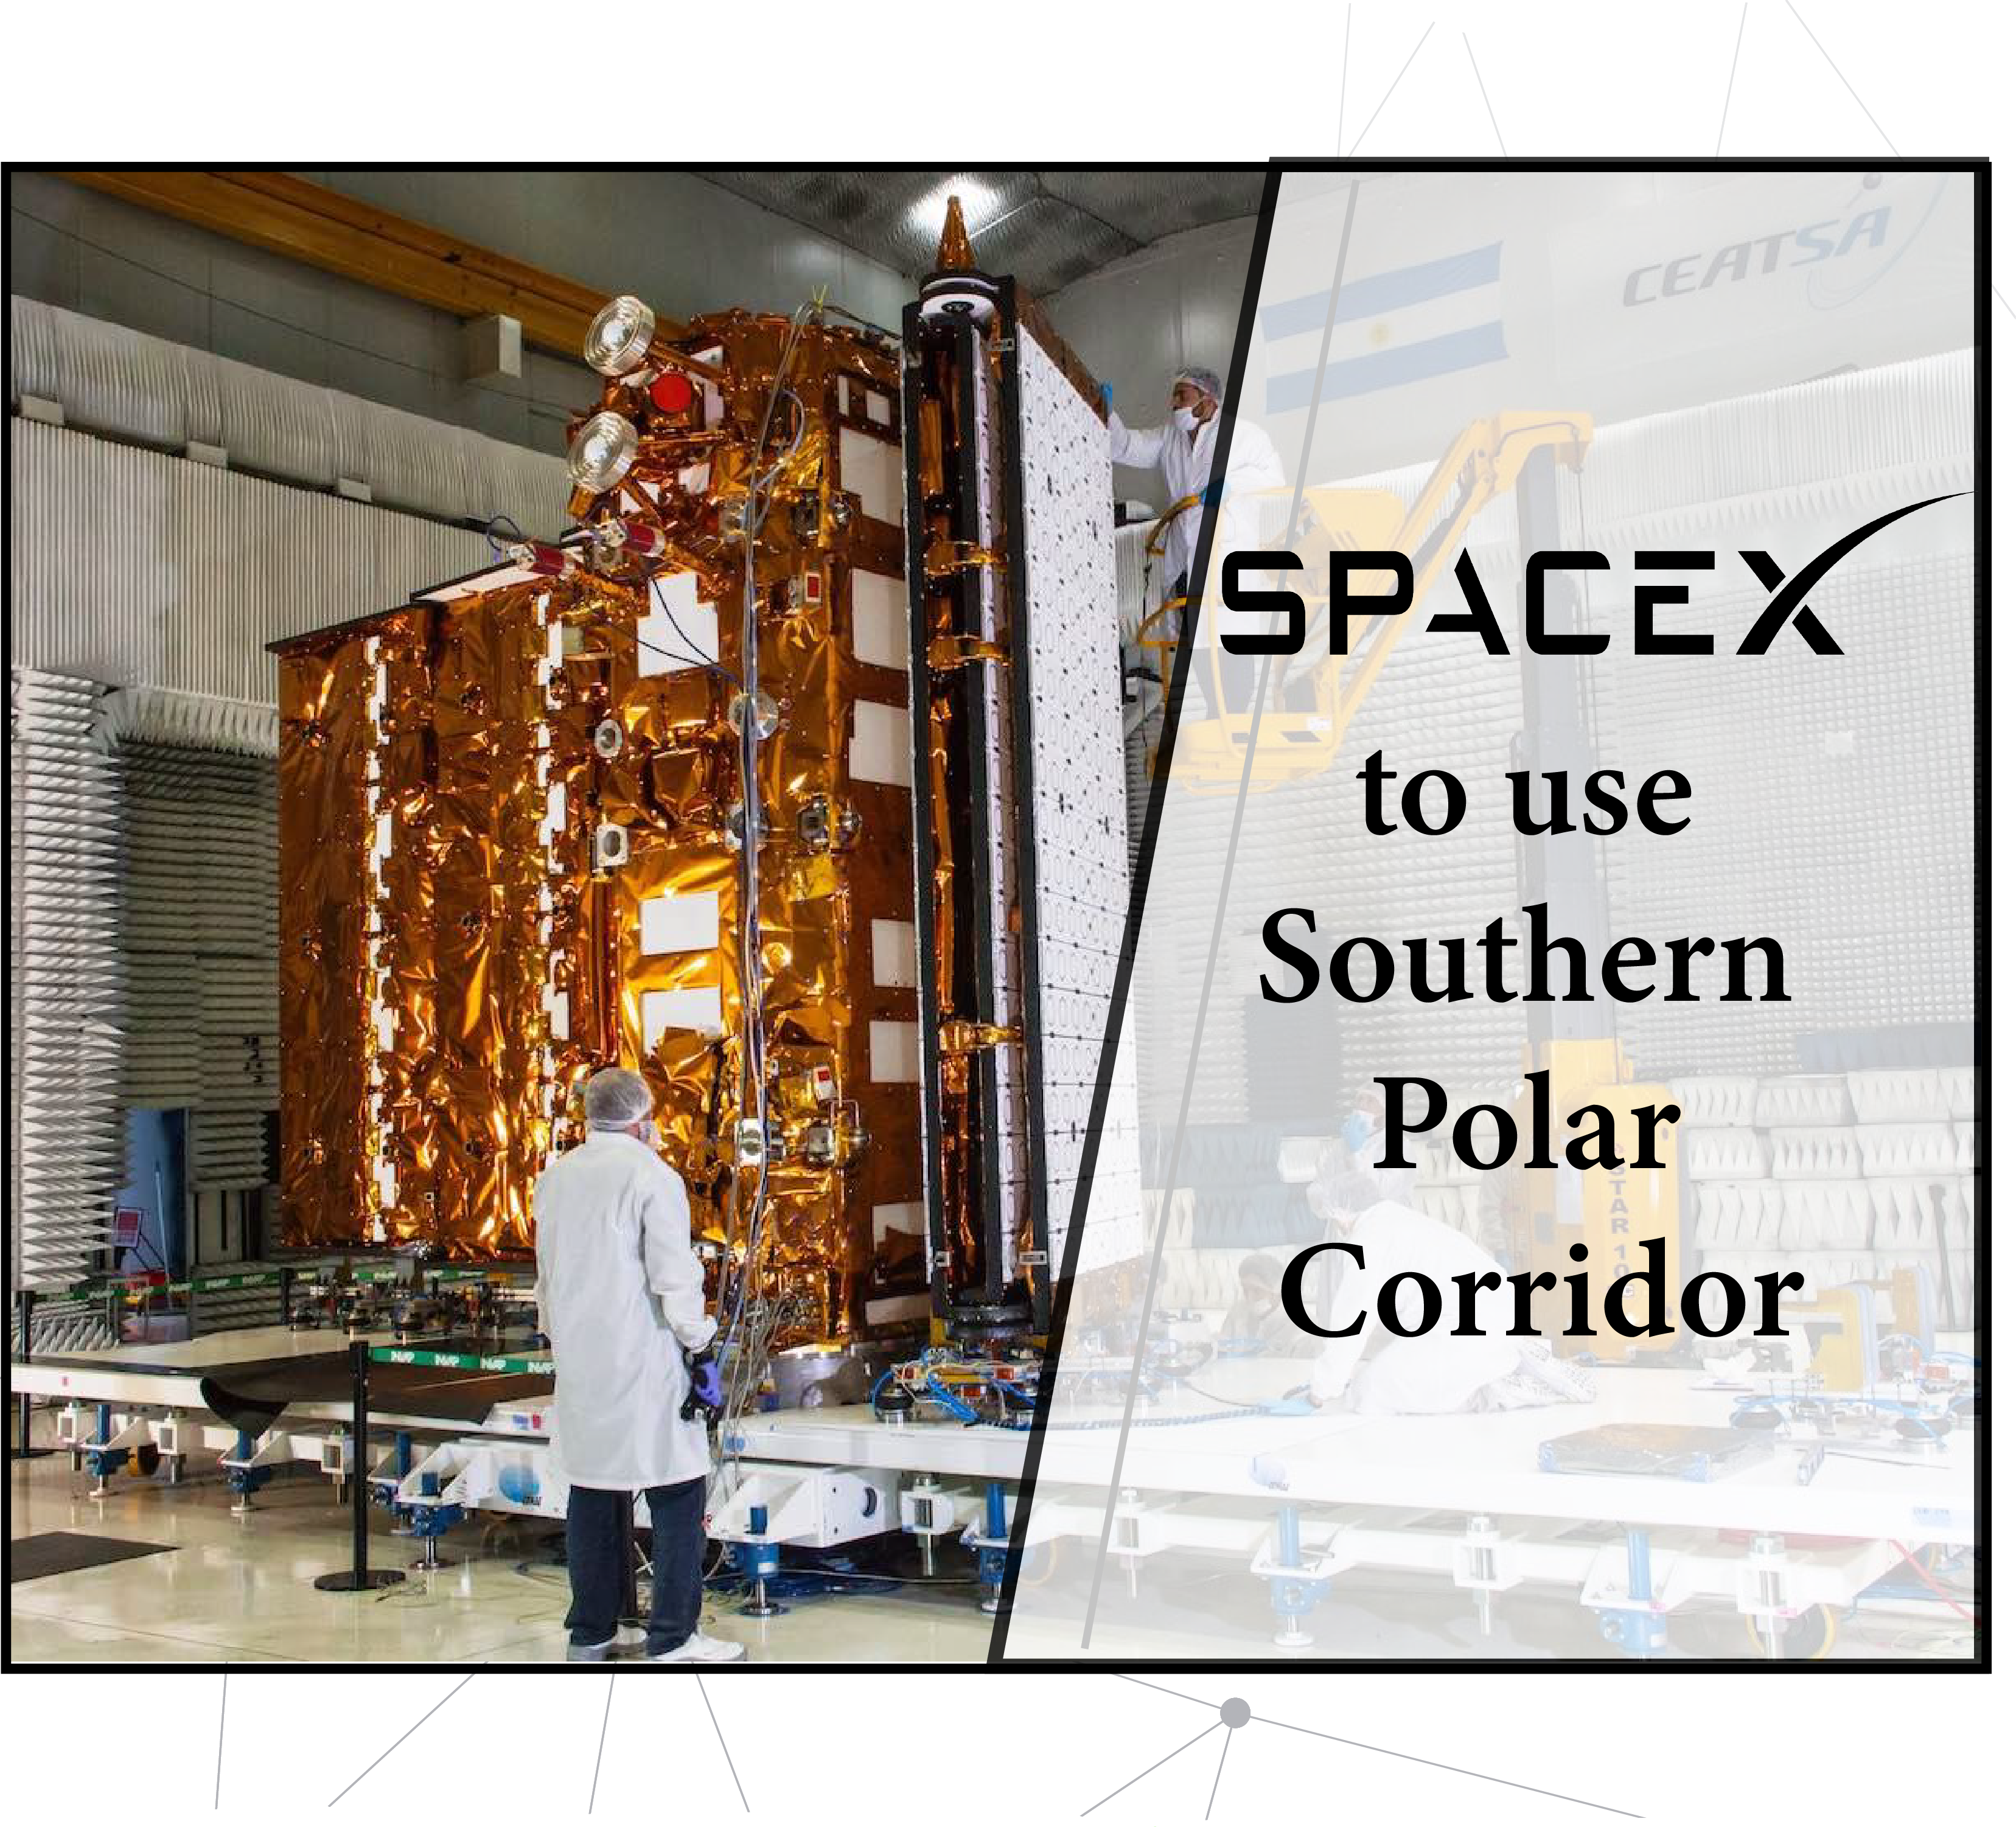 SpaceX to use Southern Polar Corridor for the first time since 1960.